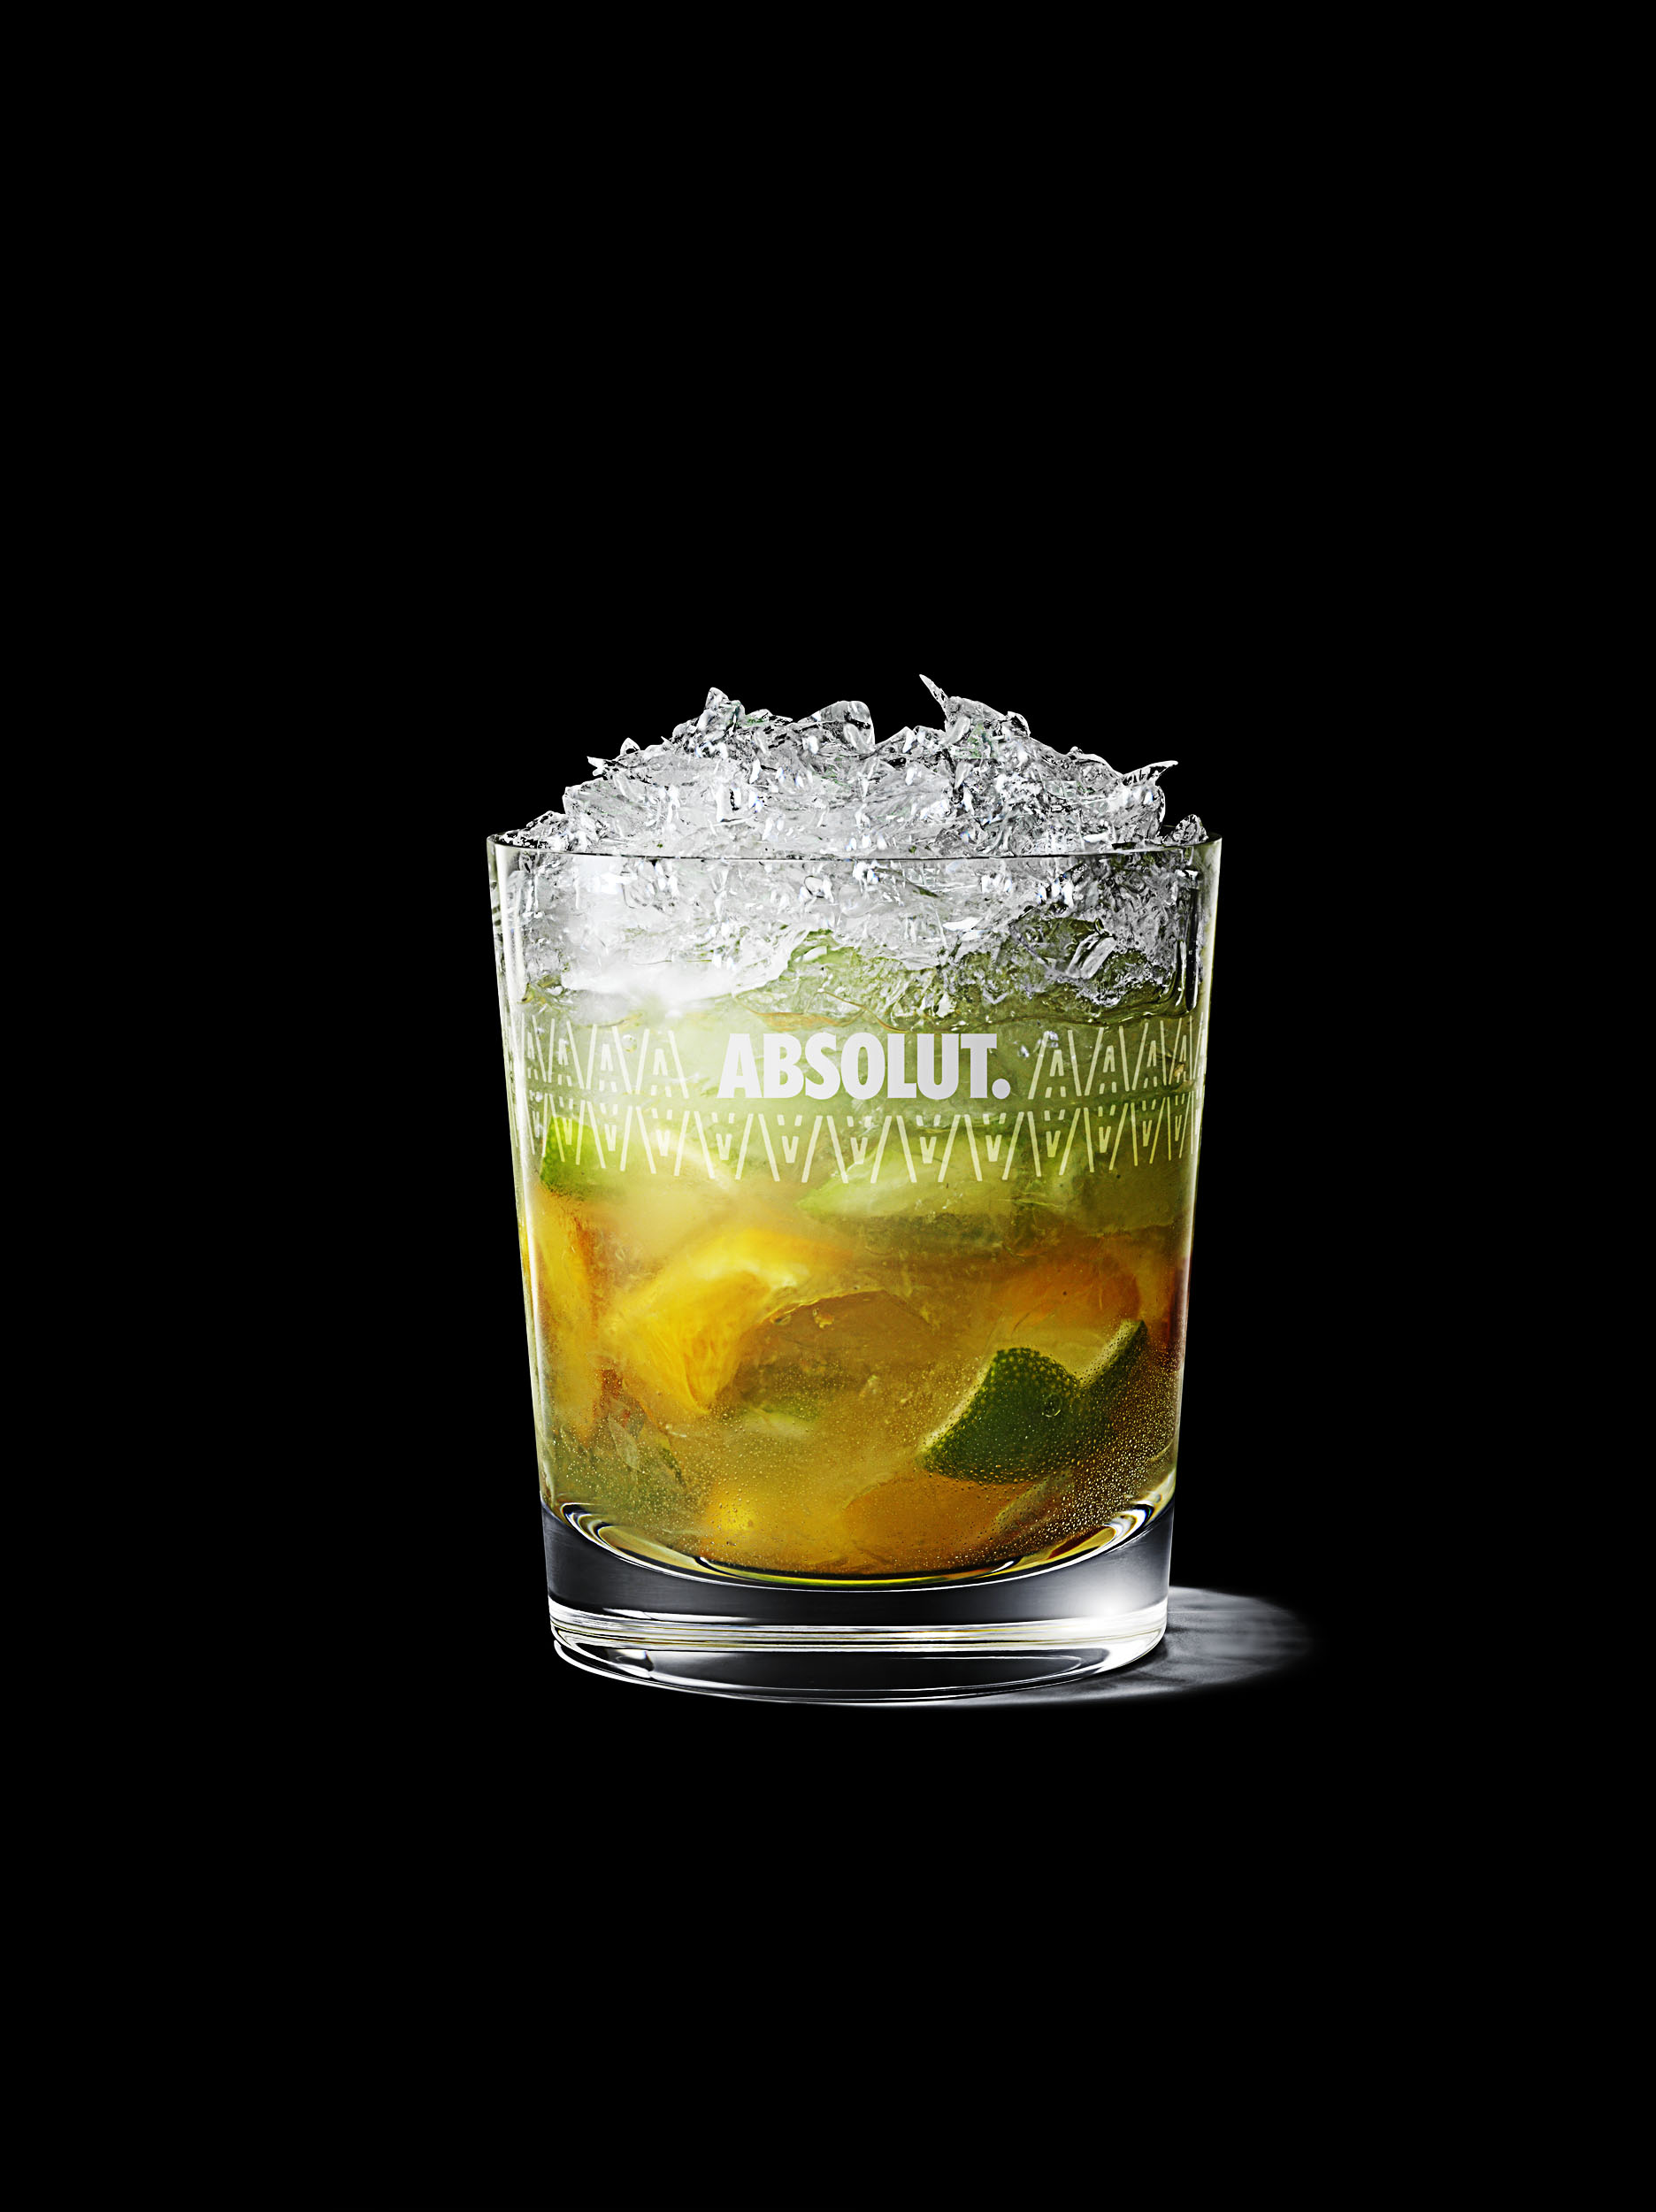 jensmortensen-absolut-vodka-063f75e4